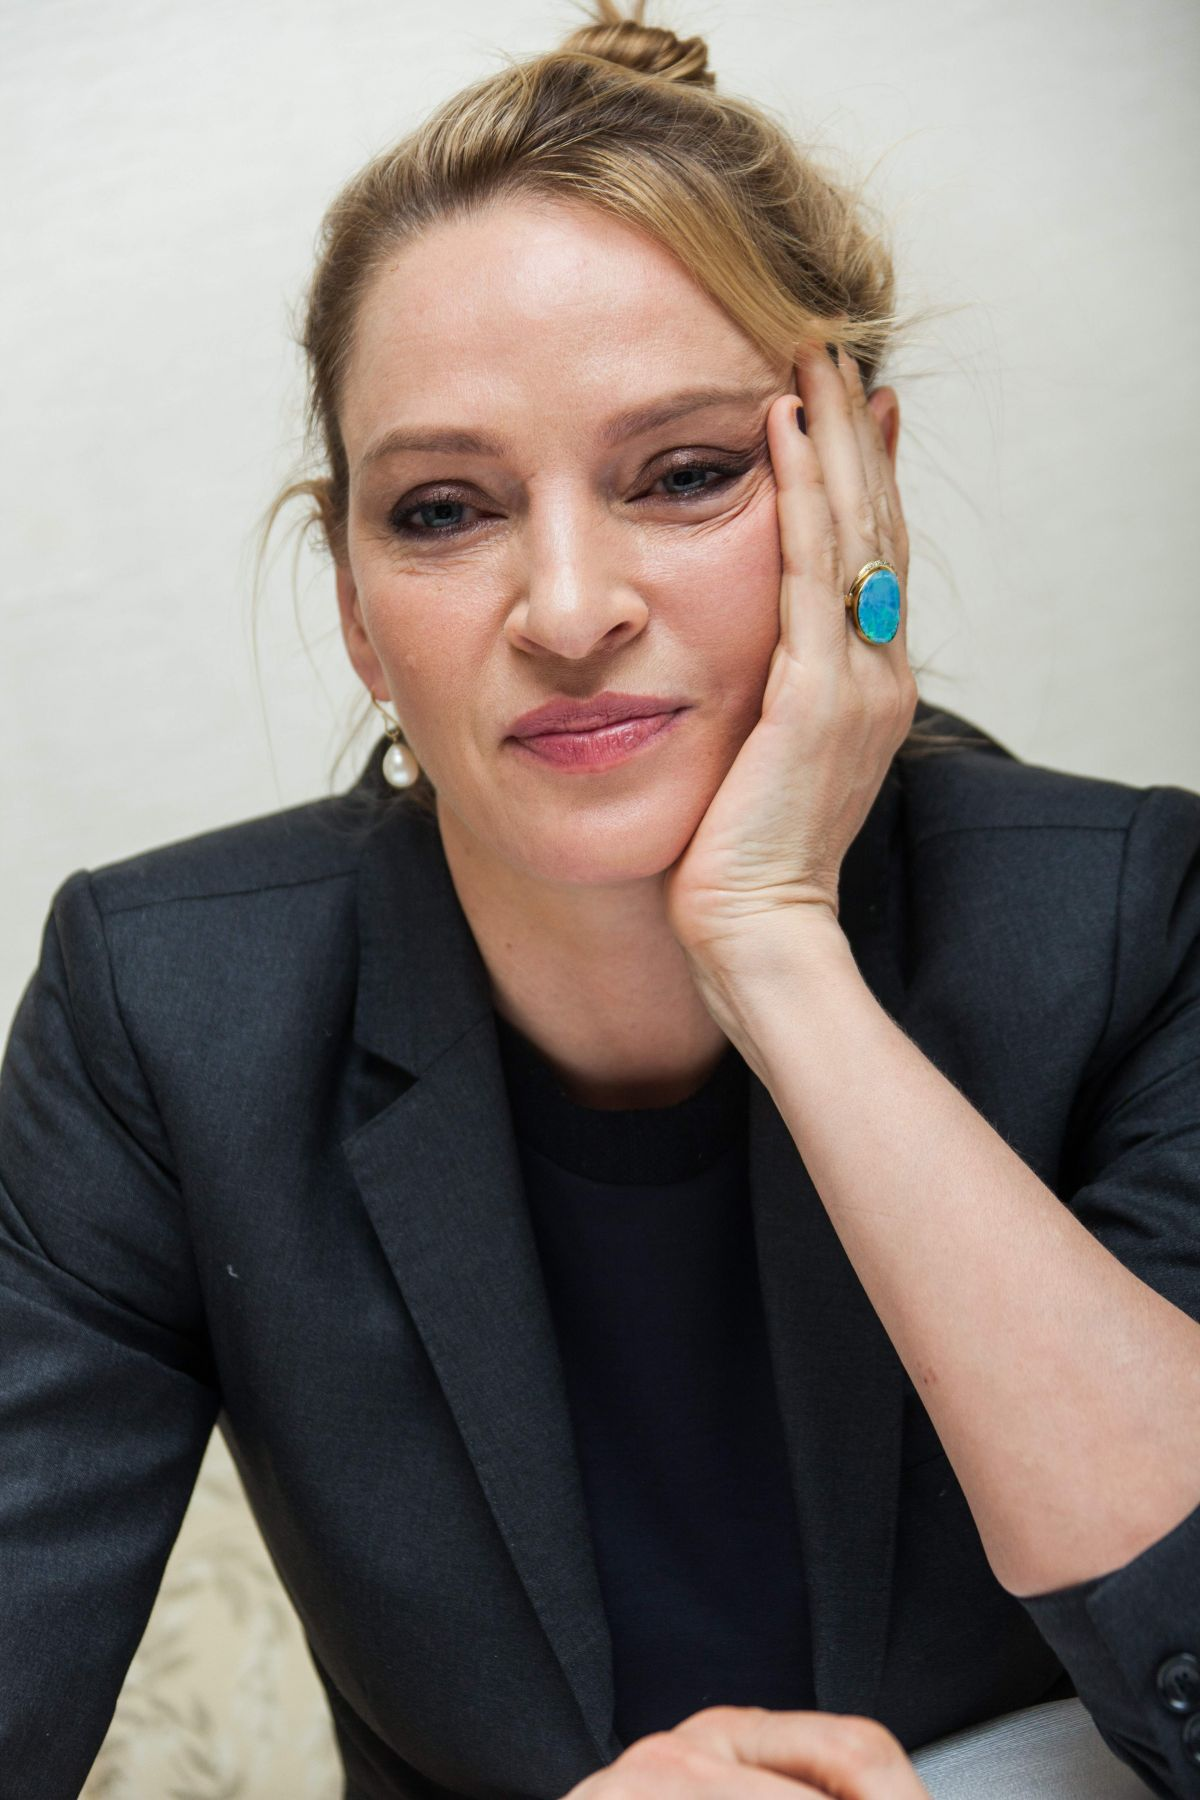 UMA THURMAN at The Slap Press Conference Portraits by Herve Tropea ...